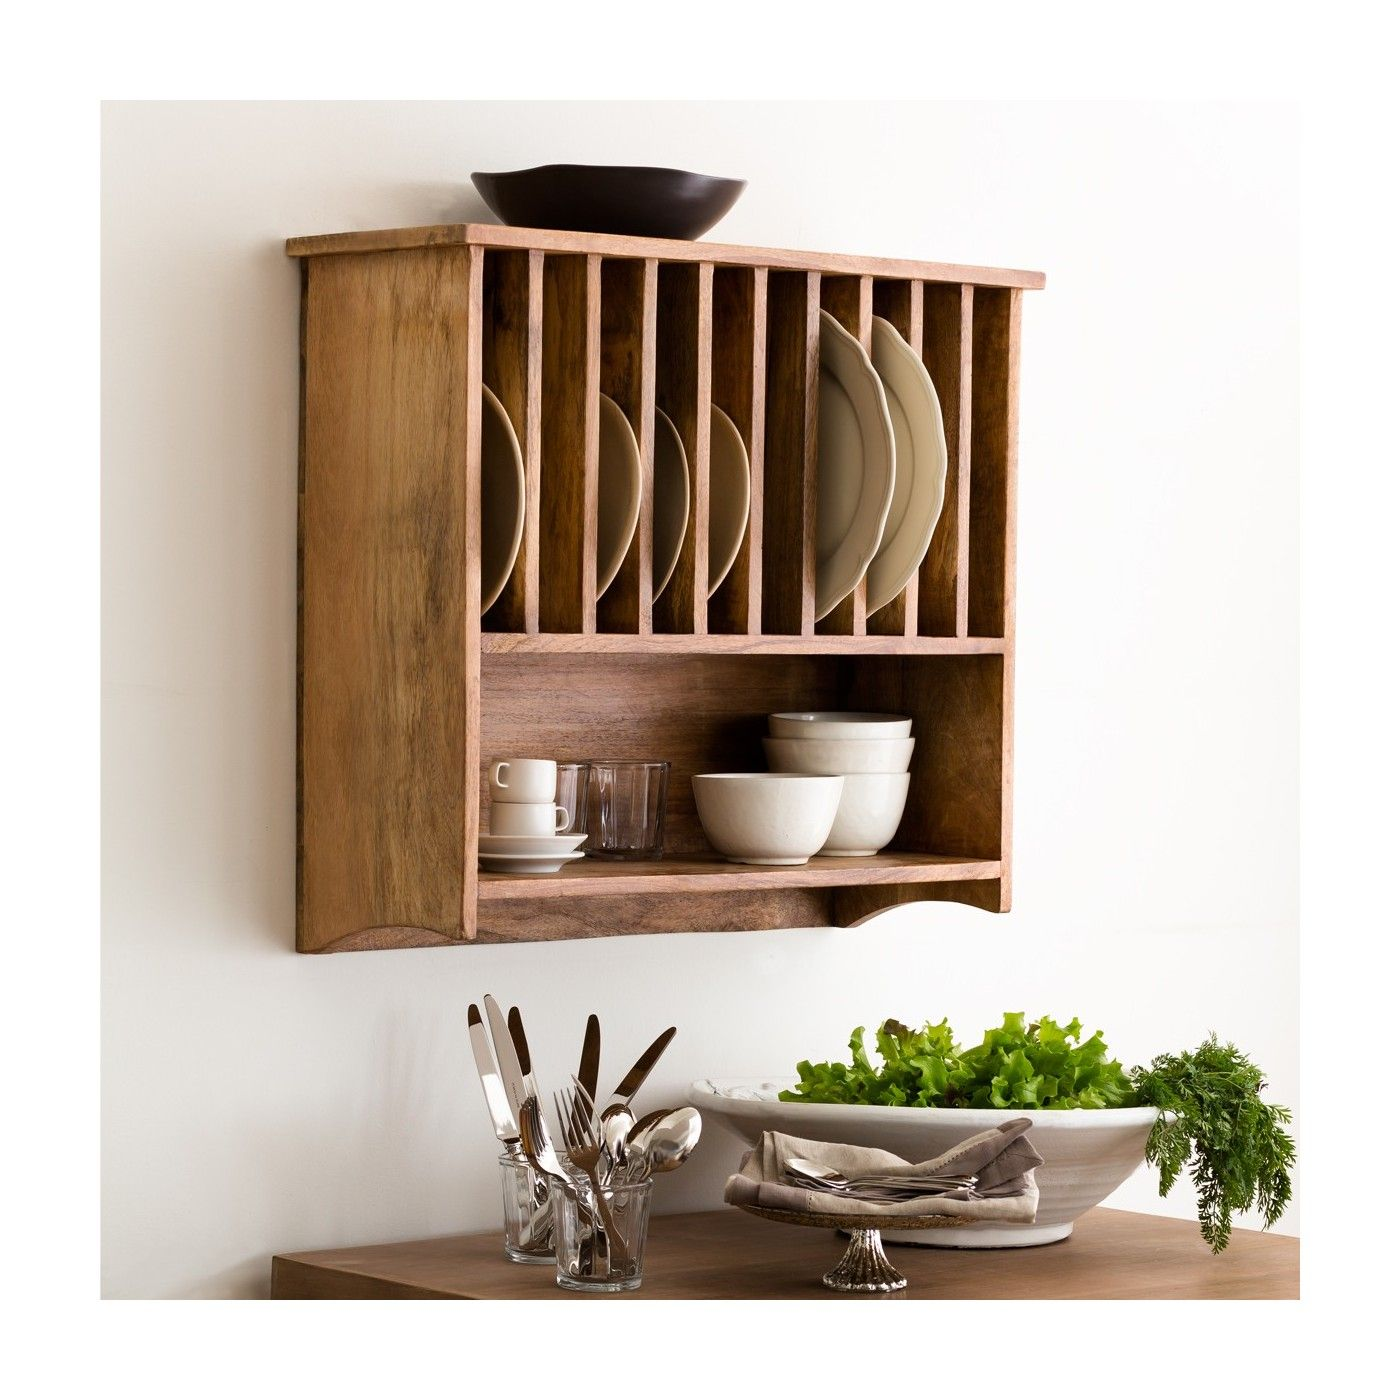 Plate Rack Google Search